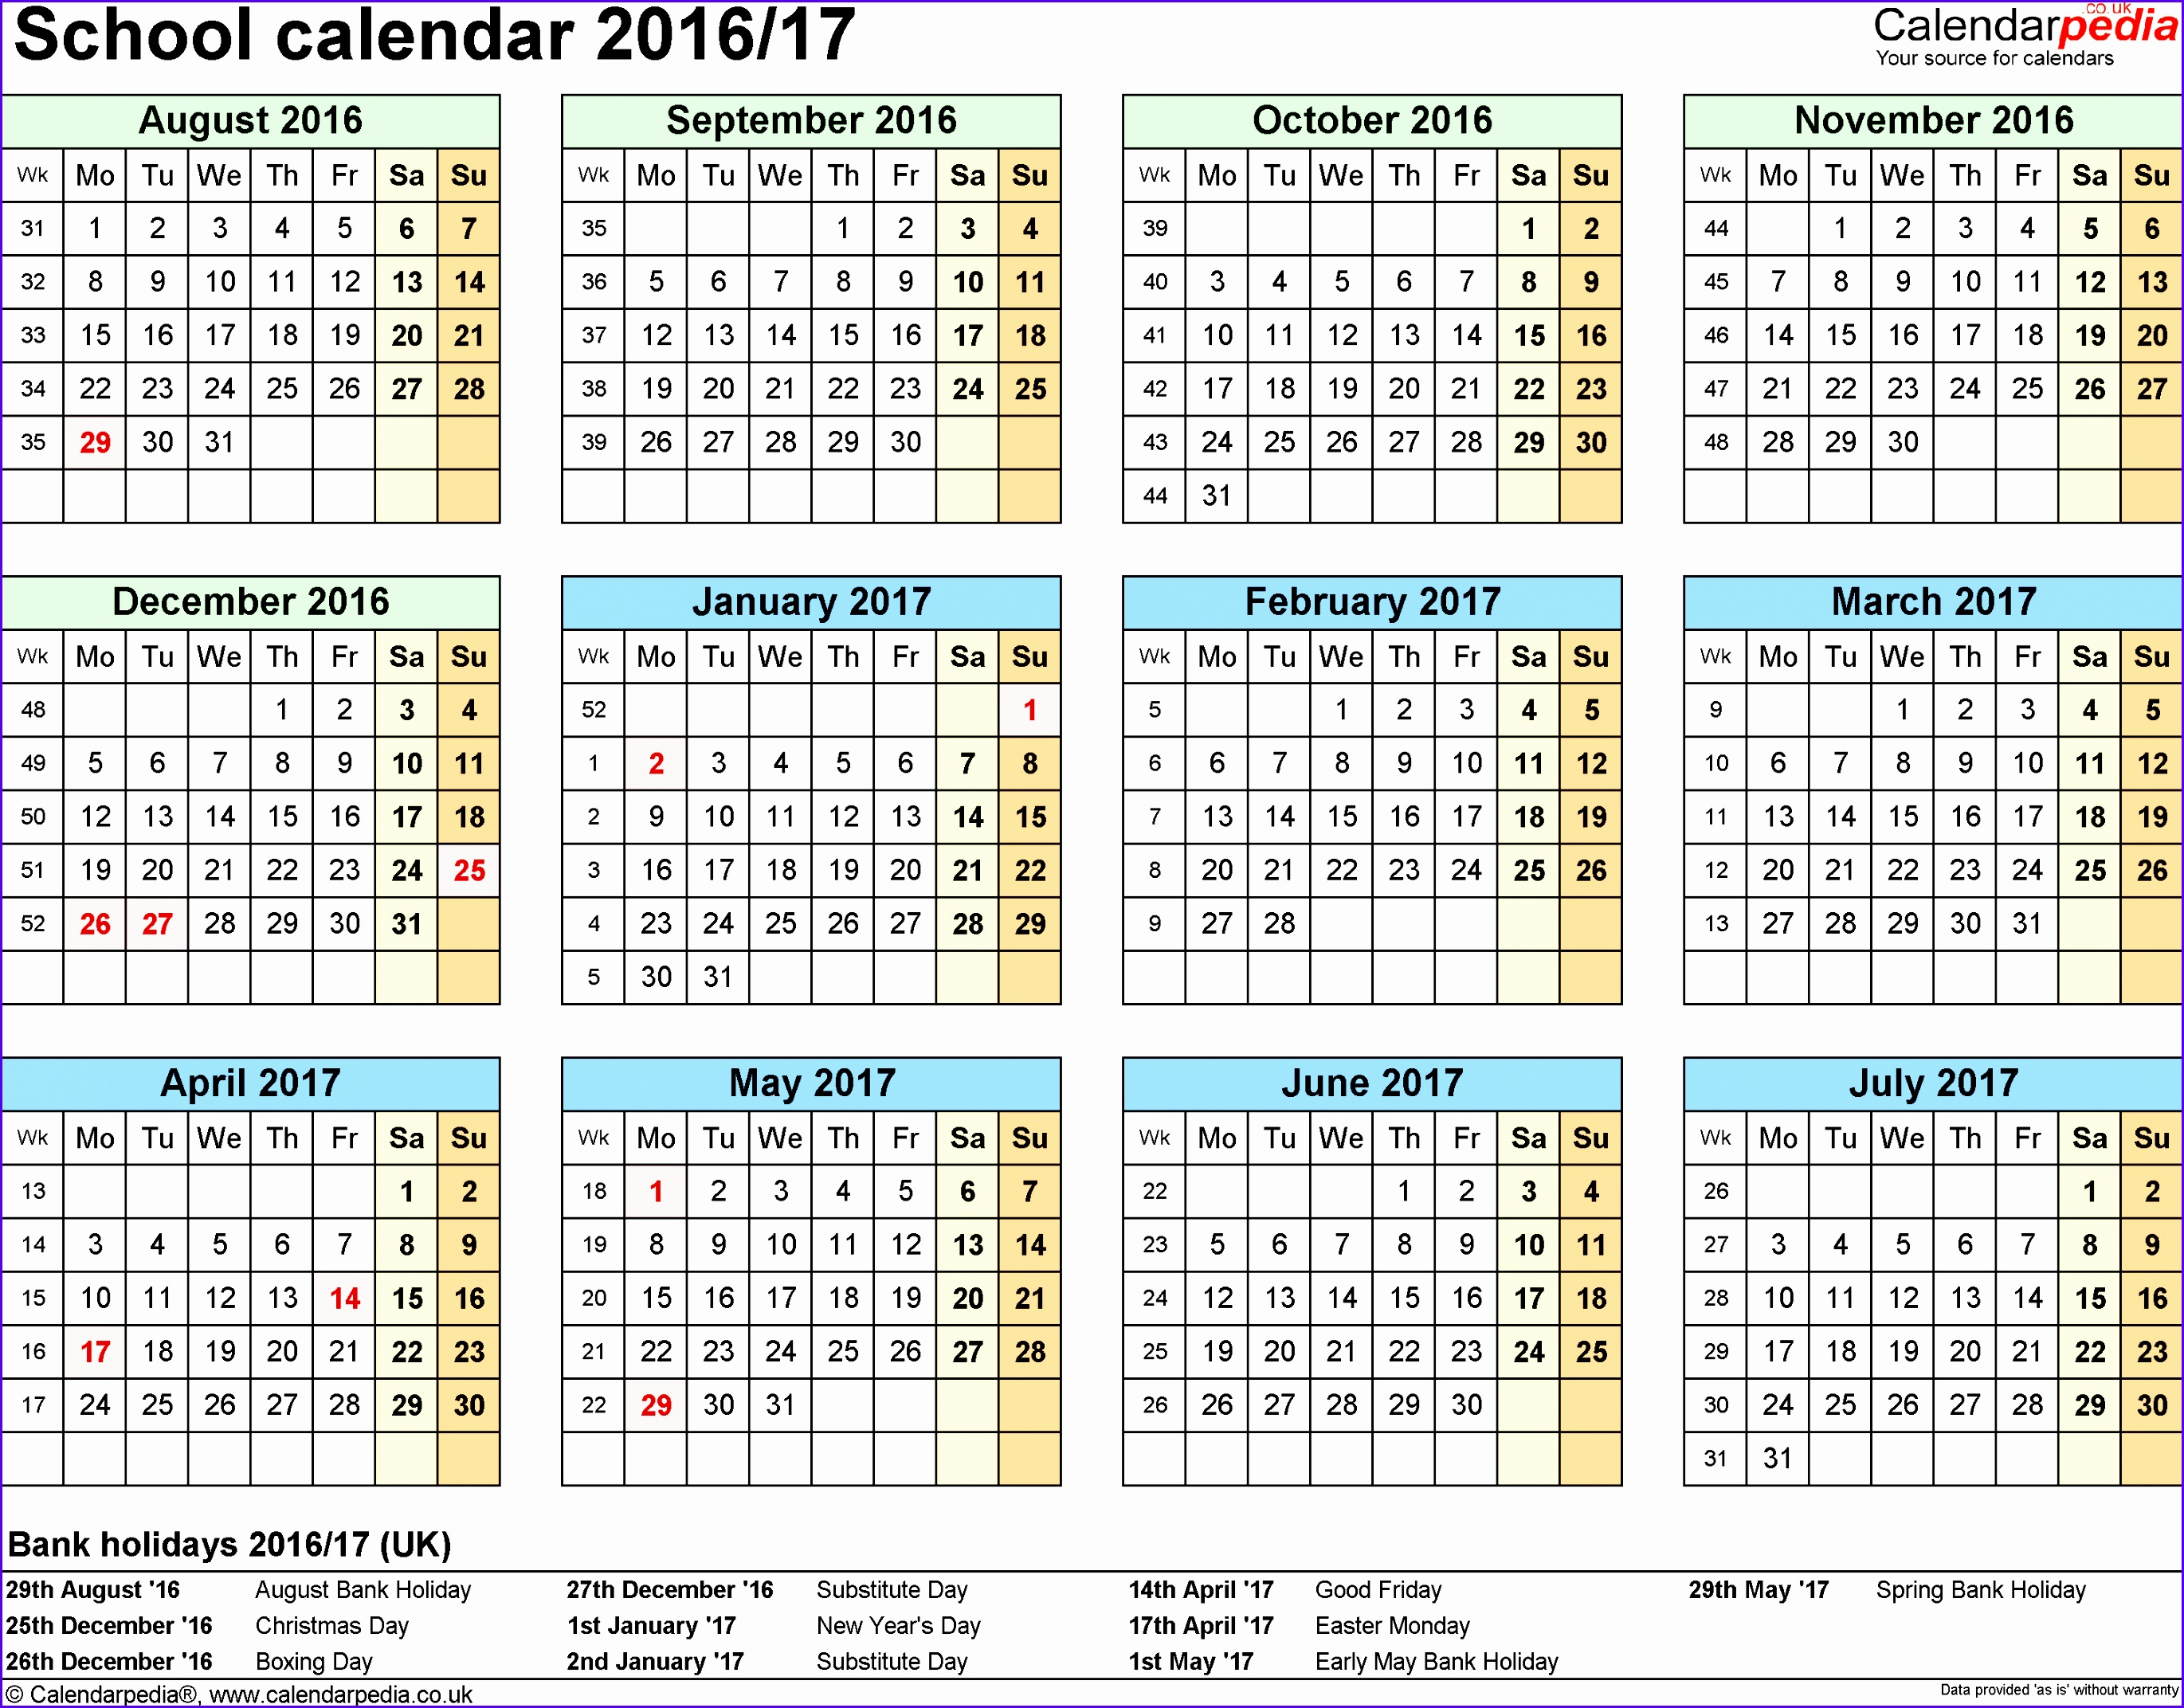 Template 4 School year calendars 2016 17 as Excel template year at a